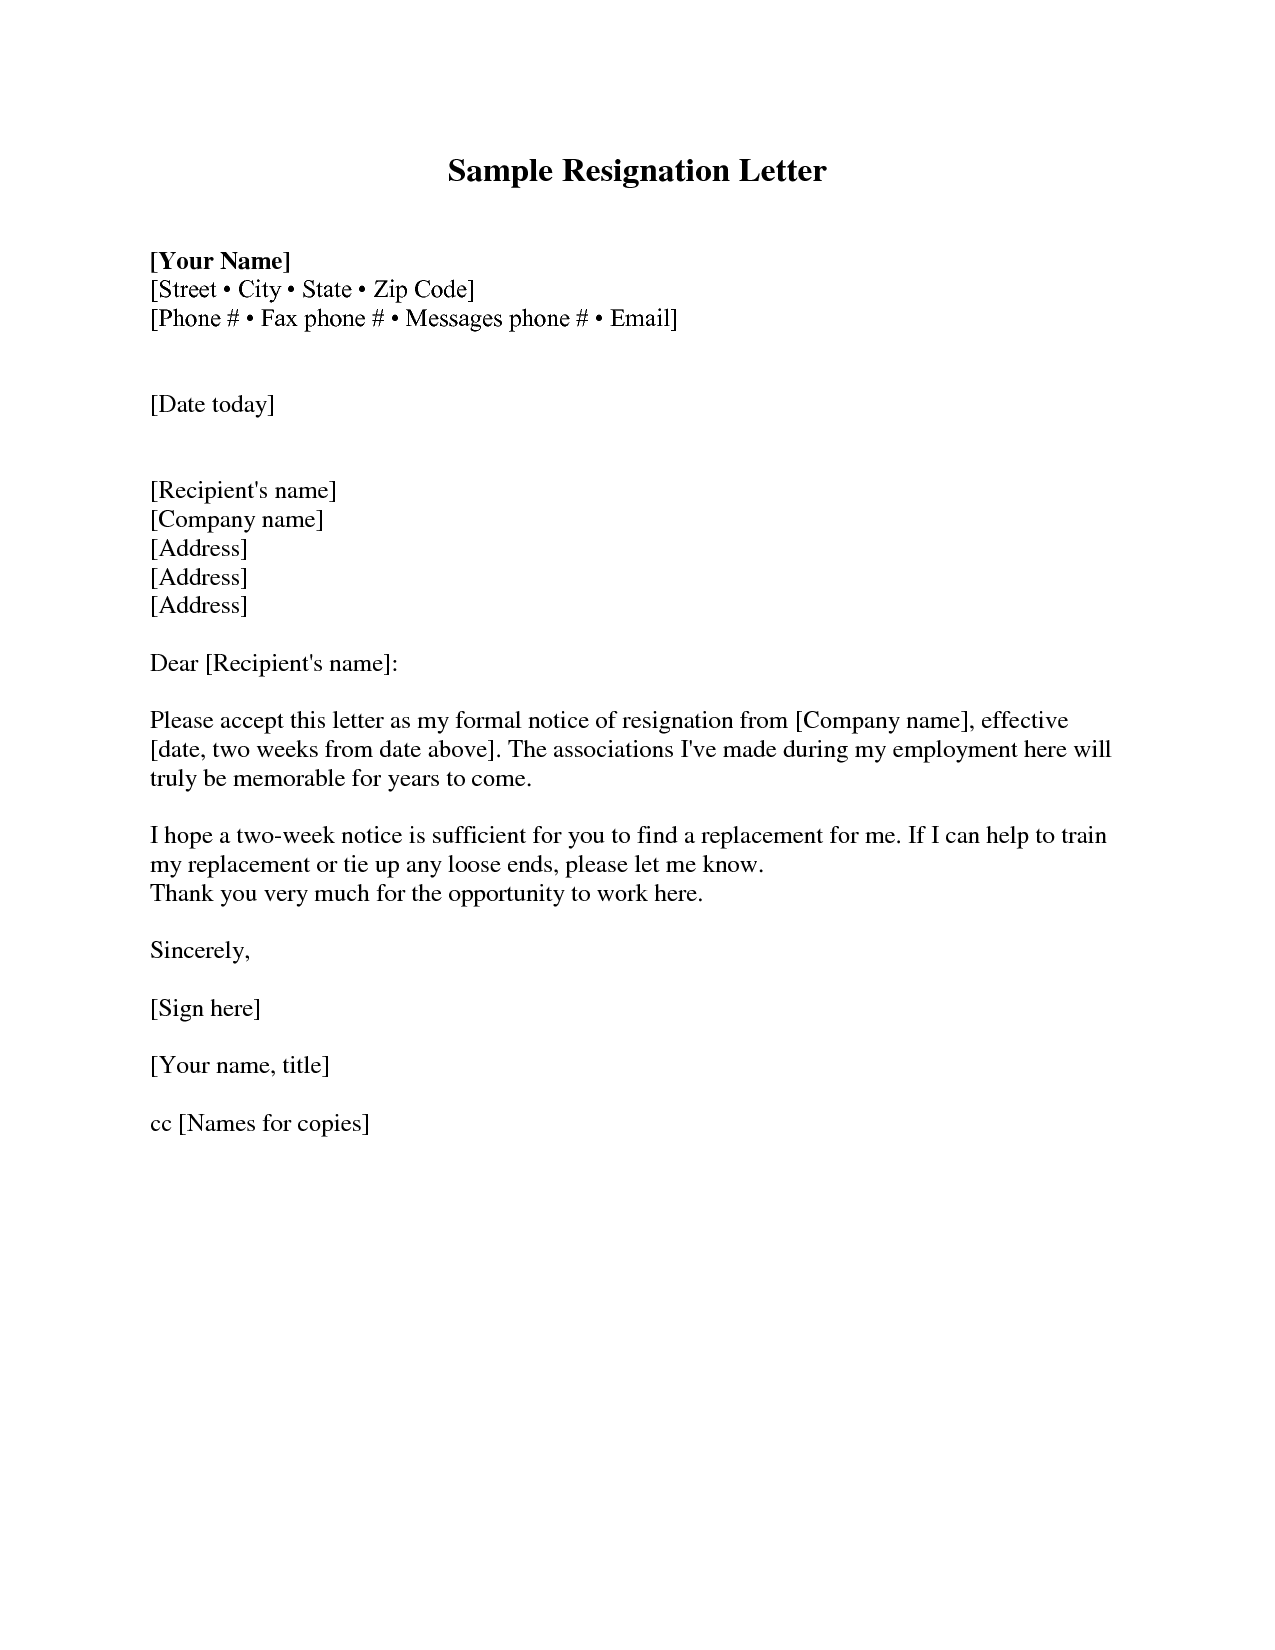 Two weeks' notice resignation letter samples